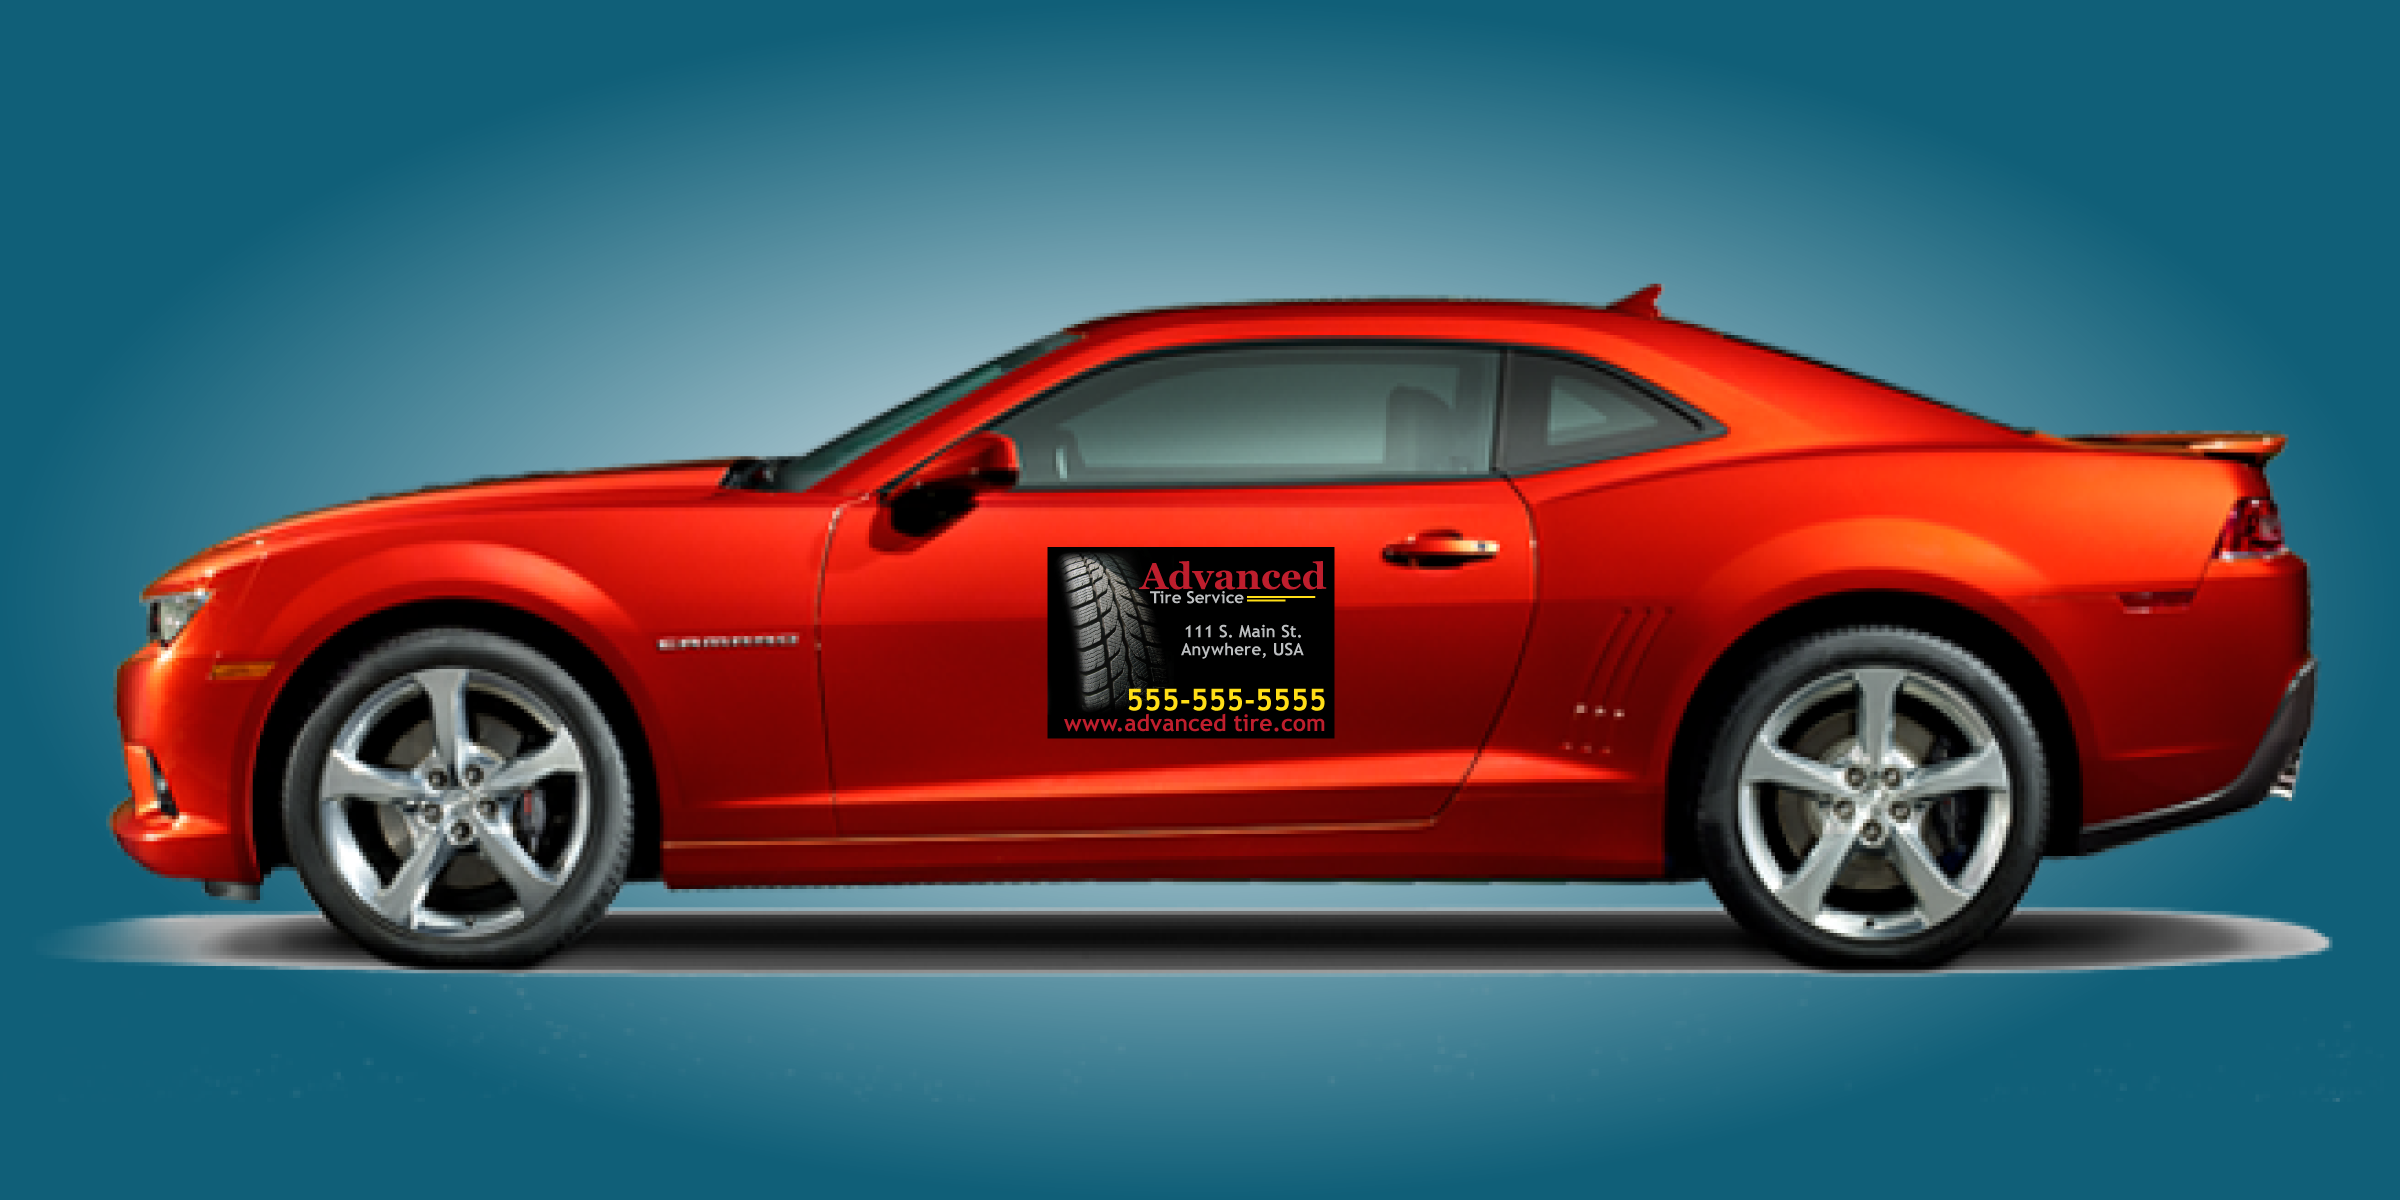 Vehicle Magnets Choose From One Of Our Professionally Designed - Custom car magnets business